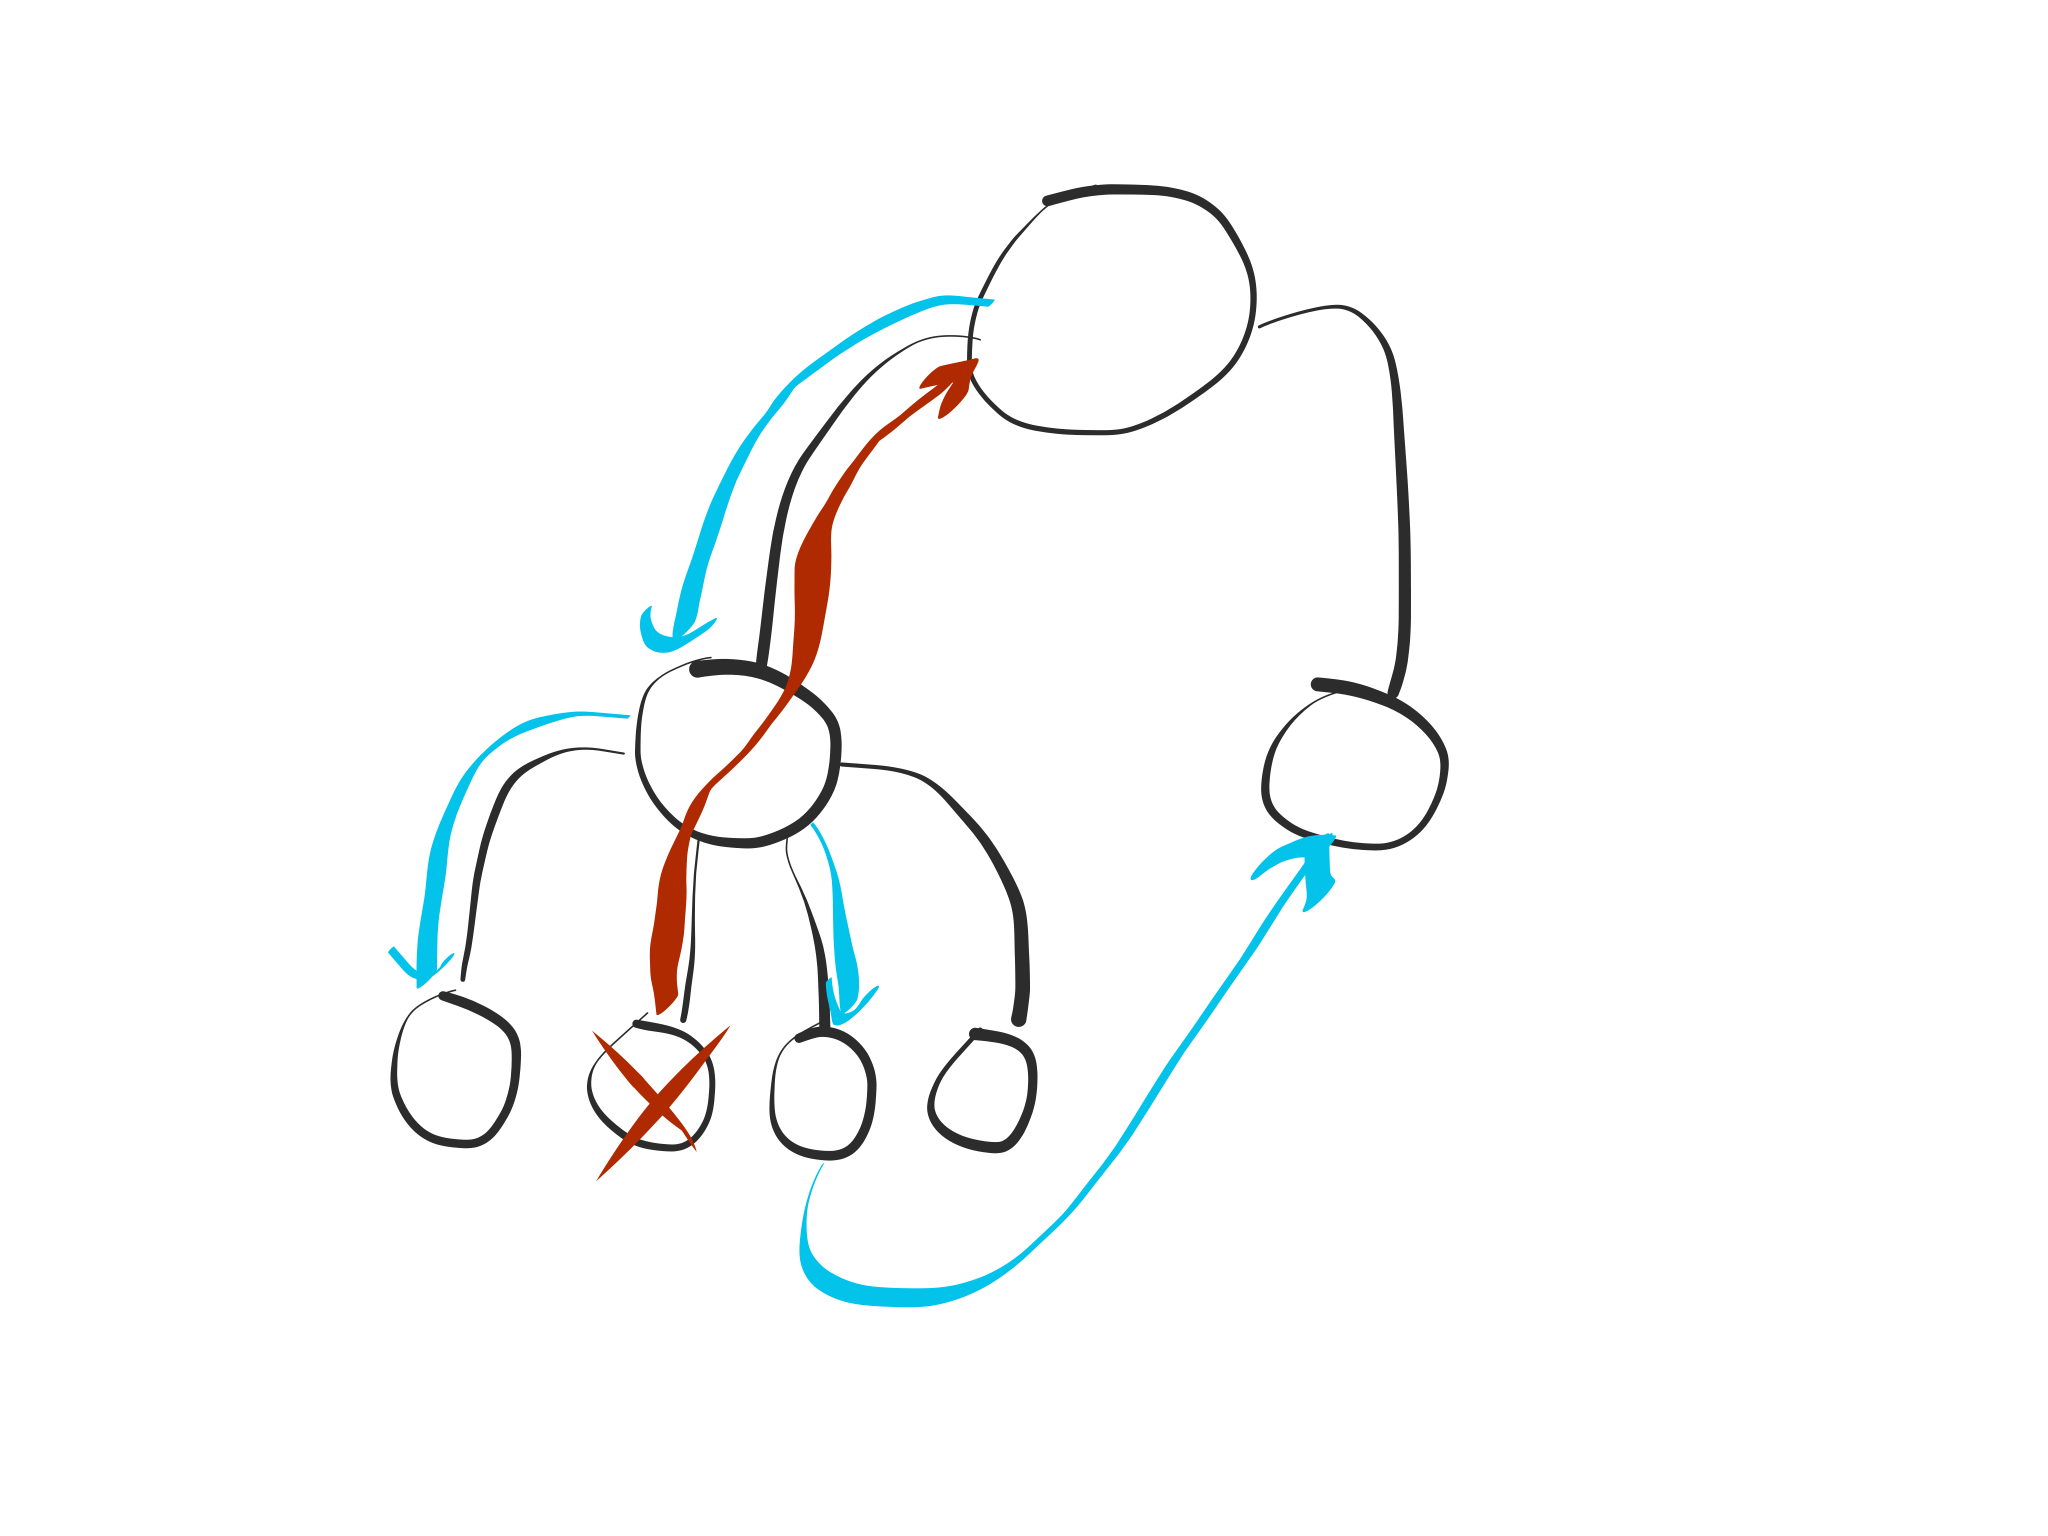 Business logic in blue, failure handling in red. Both flows are separate from each other.